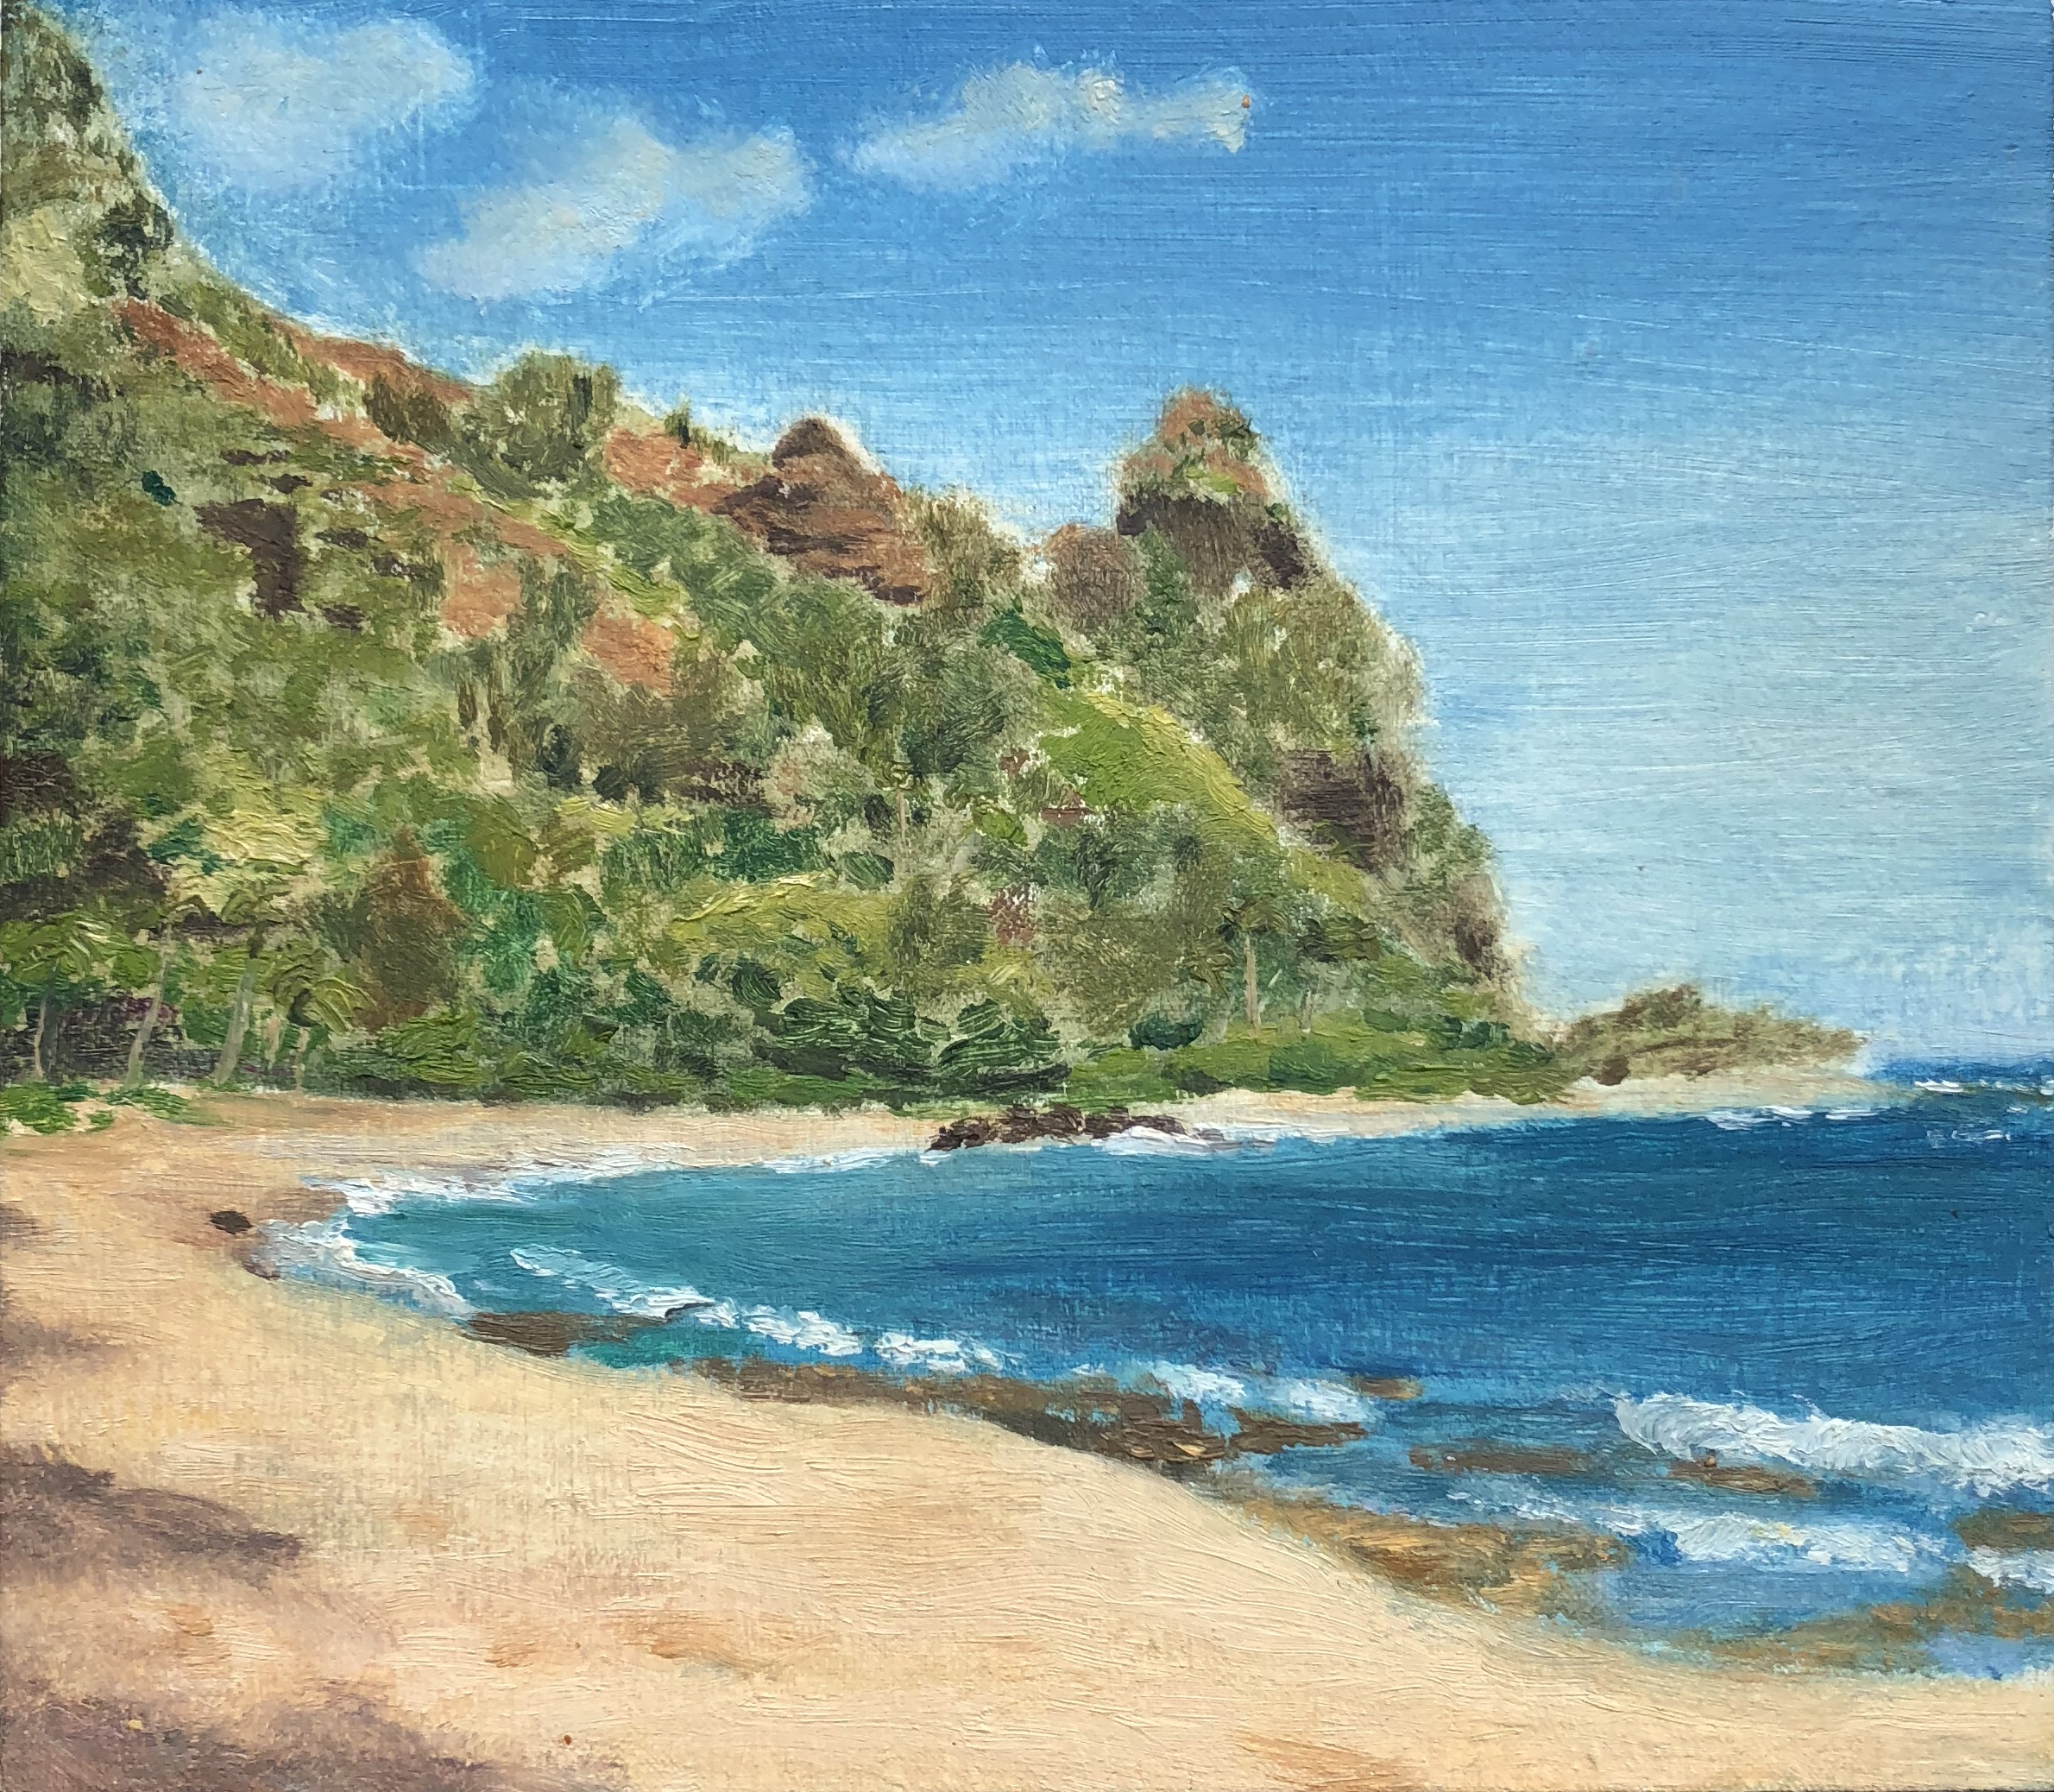 Ha'ena State Park Oil on linen 6 x 7 inches 2008